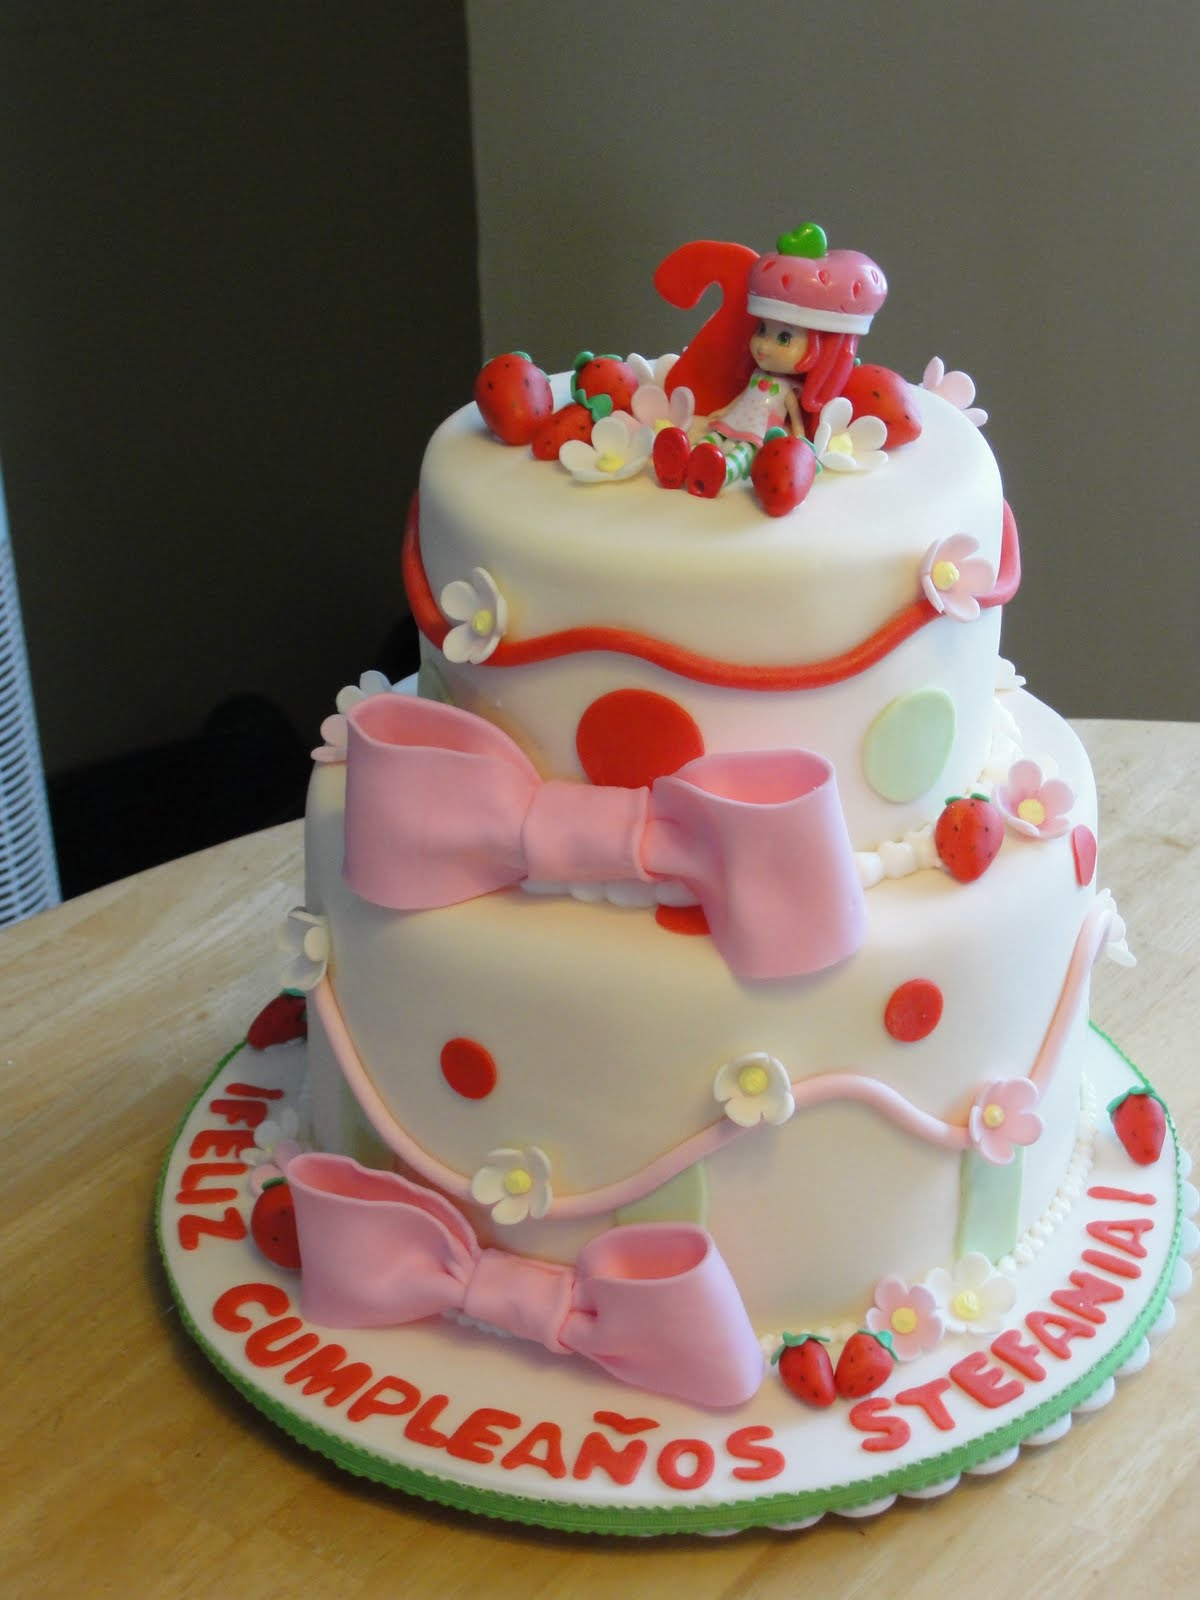 Strawberry Shortcake Cuppy Cake Song Free Download